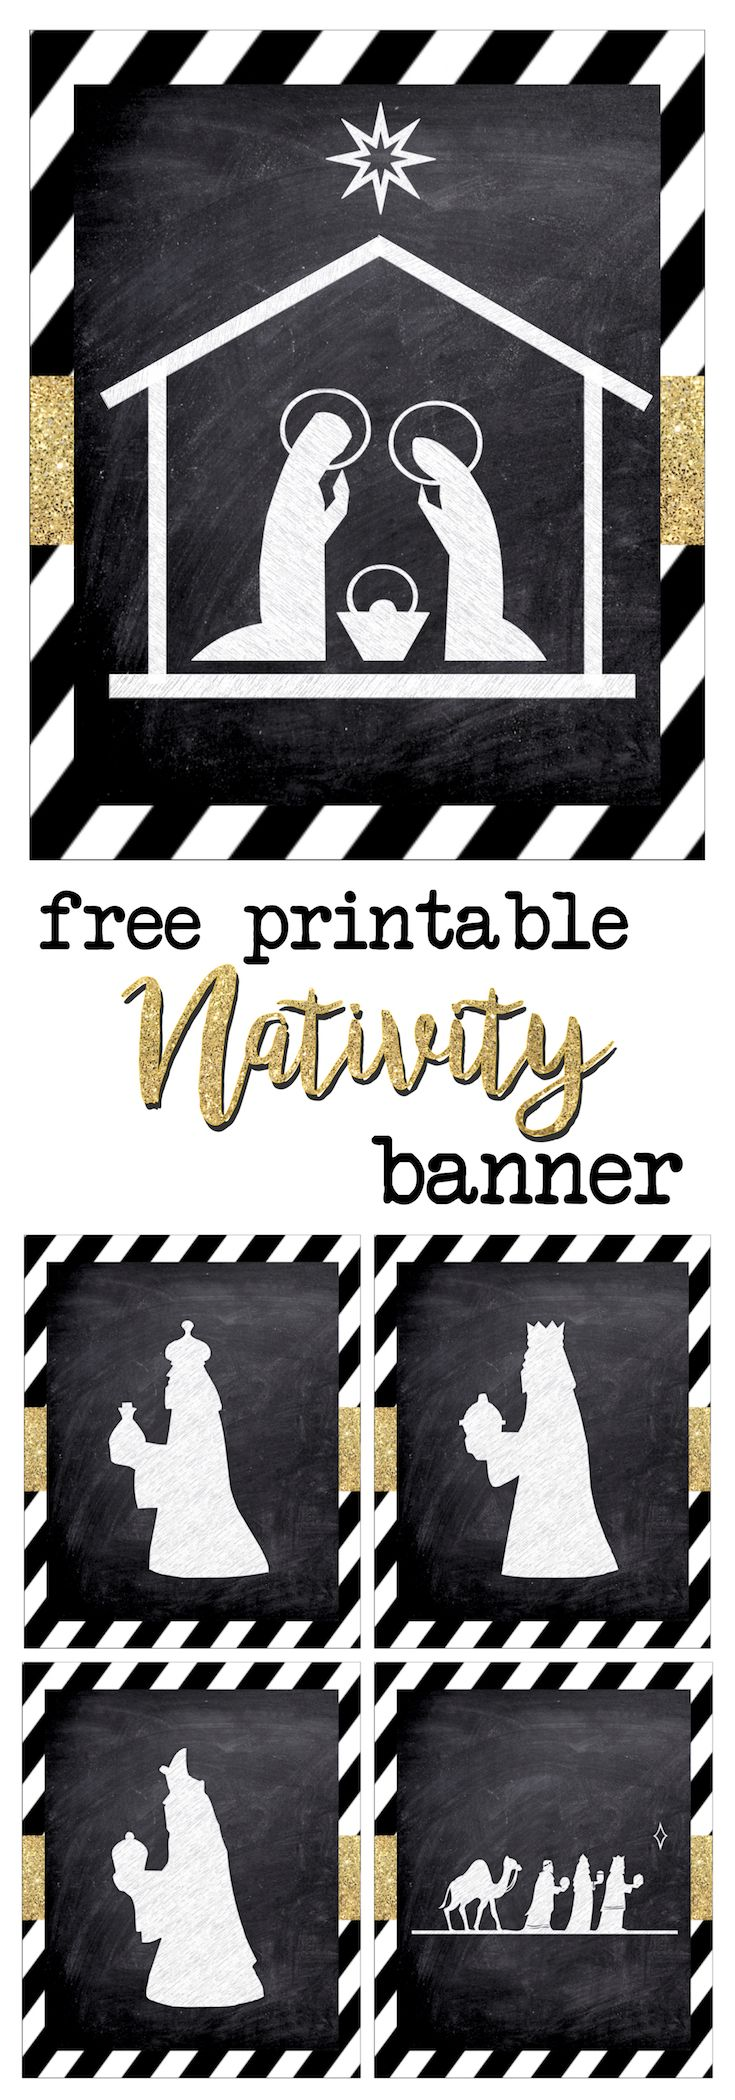 Christmas Nativity Banner free printable. Print this silhouette banner for easy and cute Christmas decor. The chalkboard nativity with gold is classy & fun.